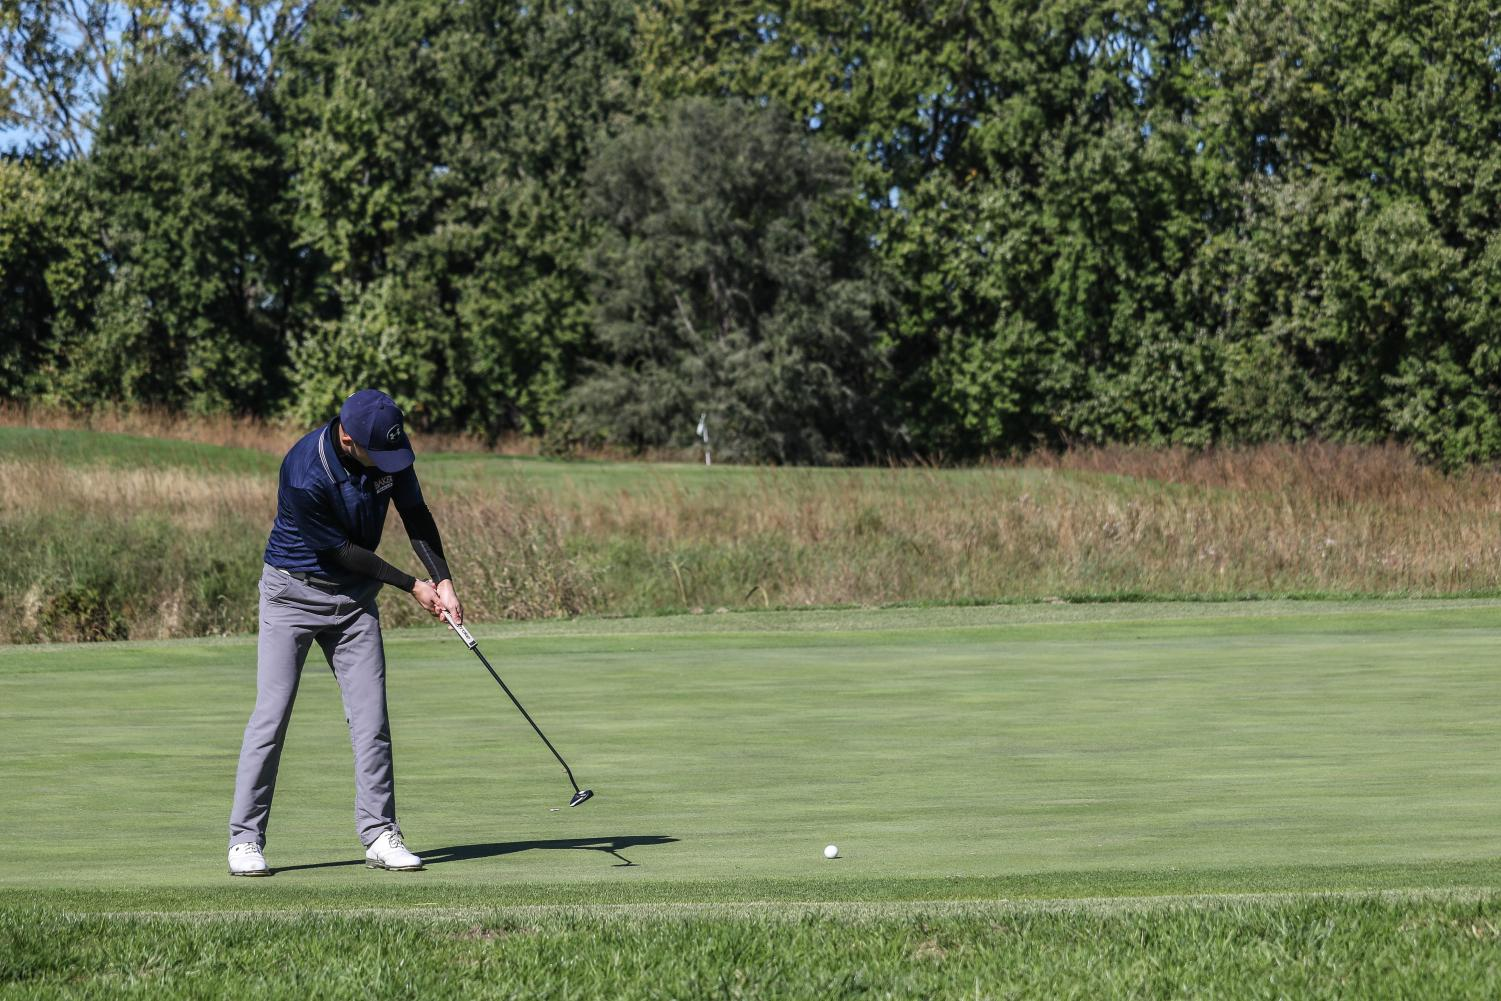 Cole Briggs hits a putt for birdie on the 3rd hole. Briggs recorded an 80 during round one of the Baker Invitational at Eagle Bend golf course in Lawrence.